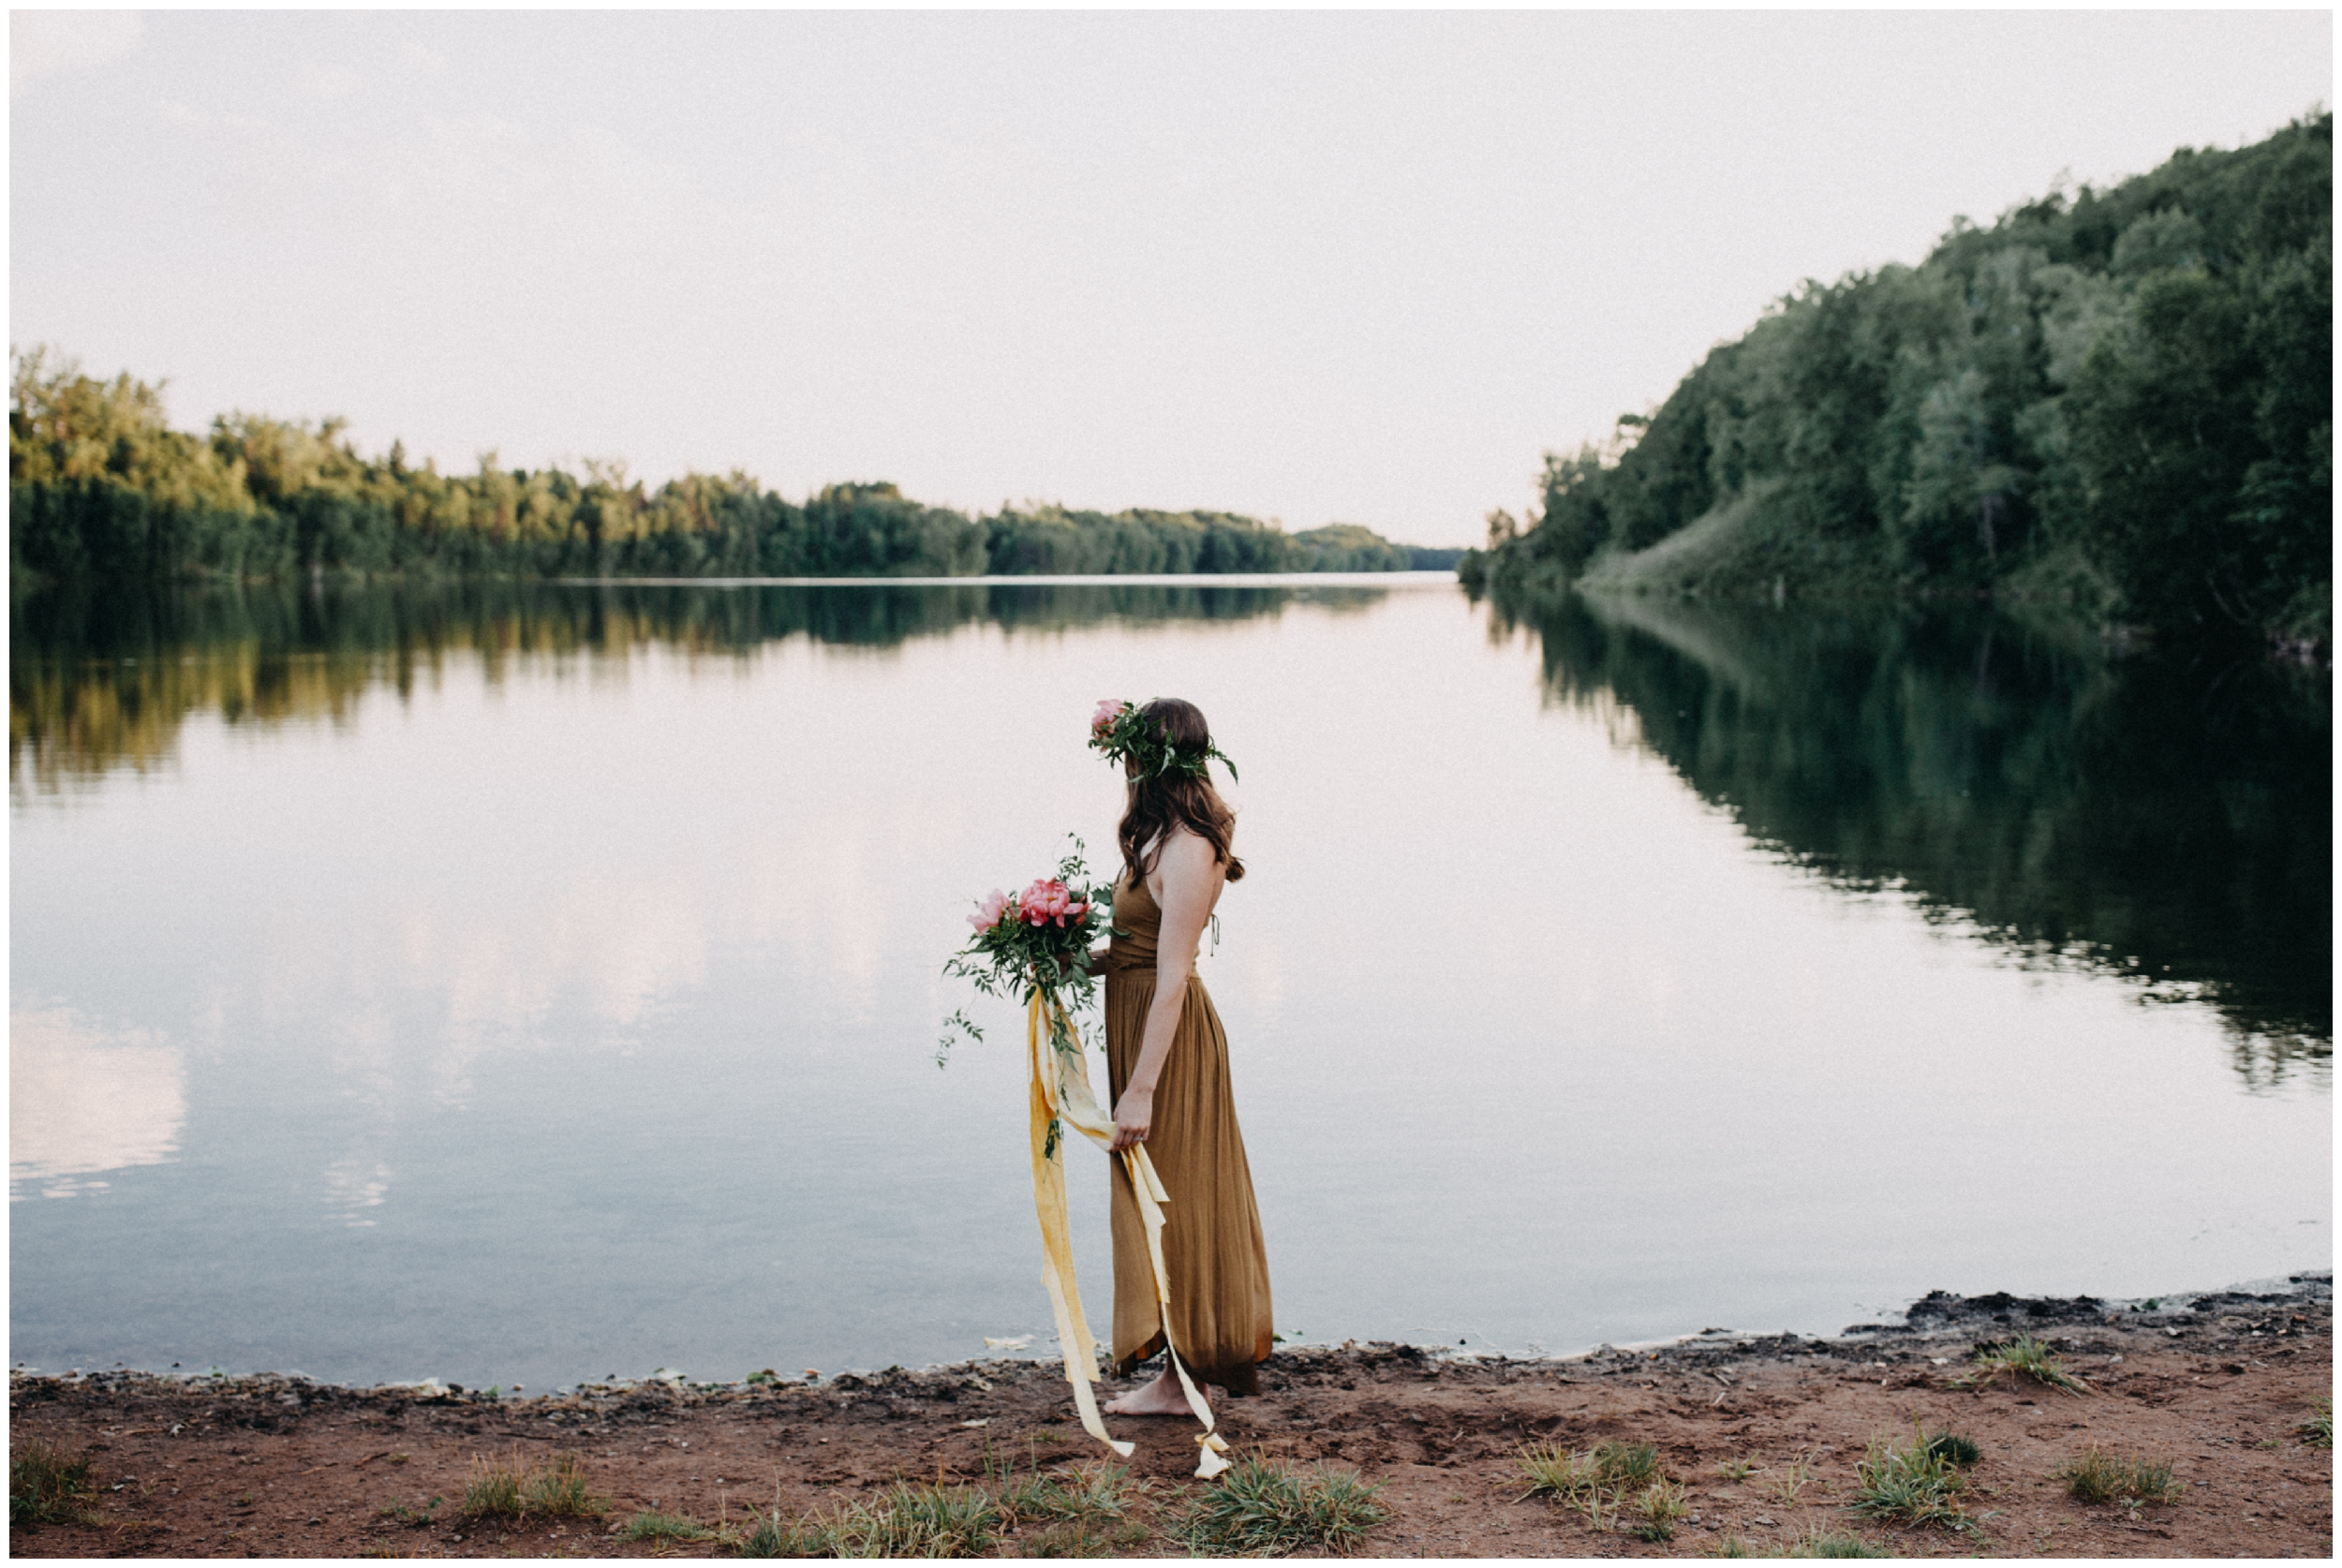 Organic boho inspired portrait session at the lake by Brainerd photographer Britt DeZeeuw